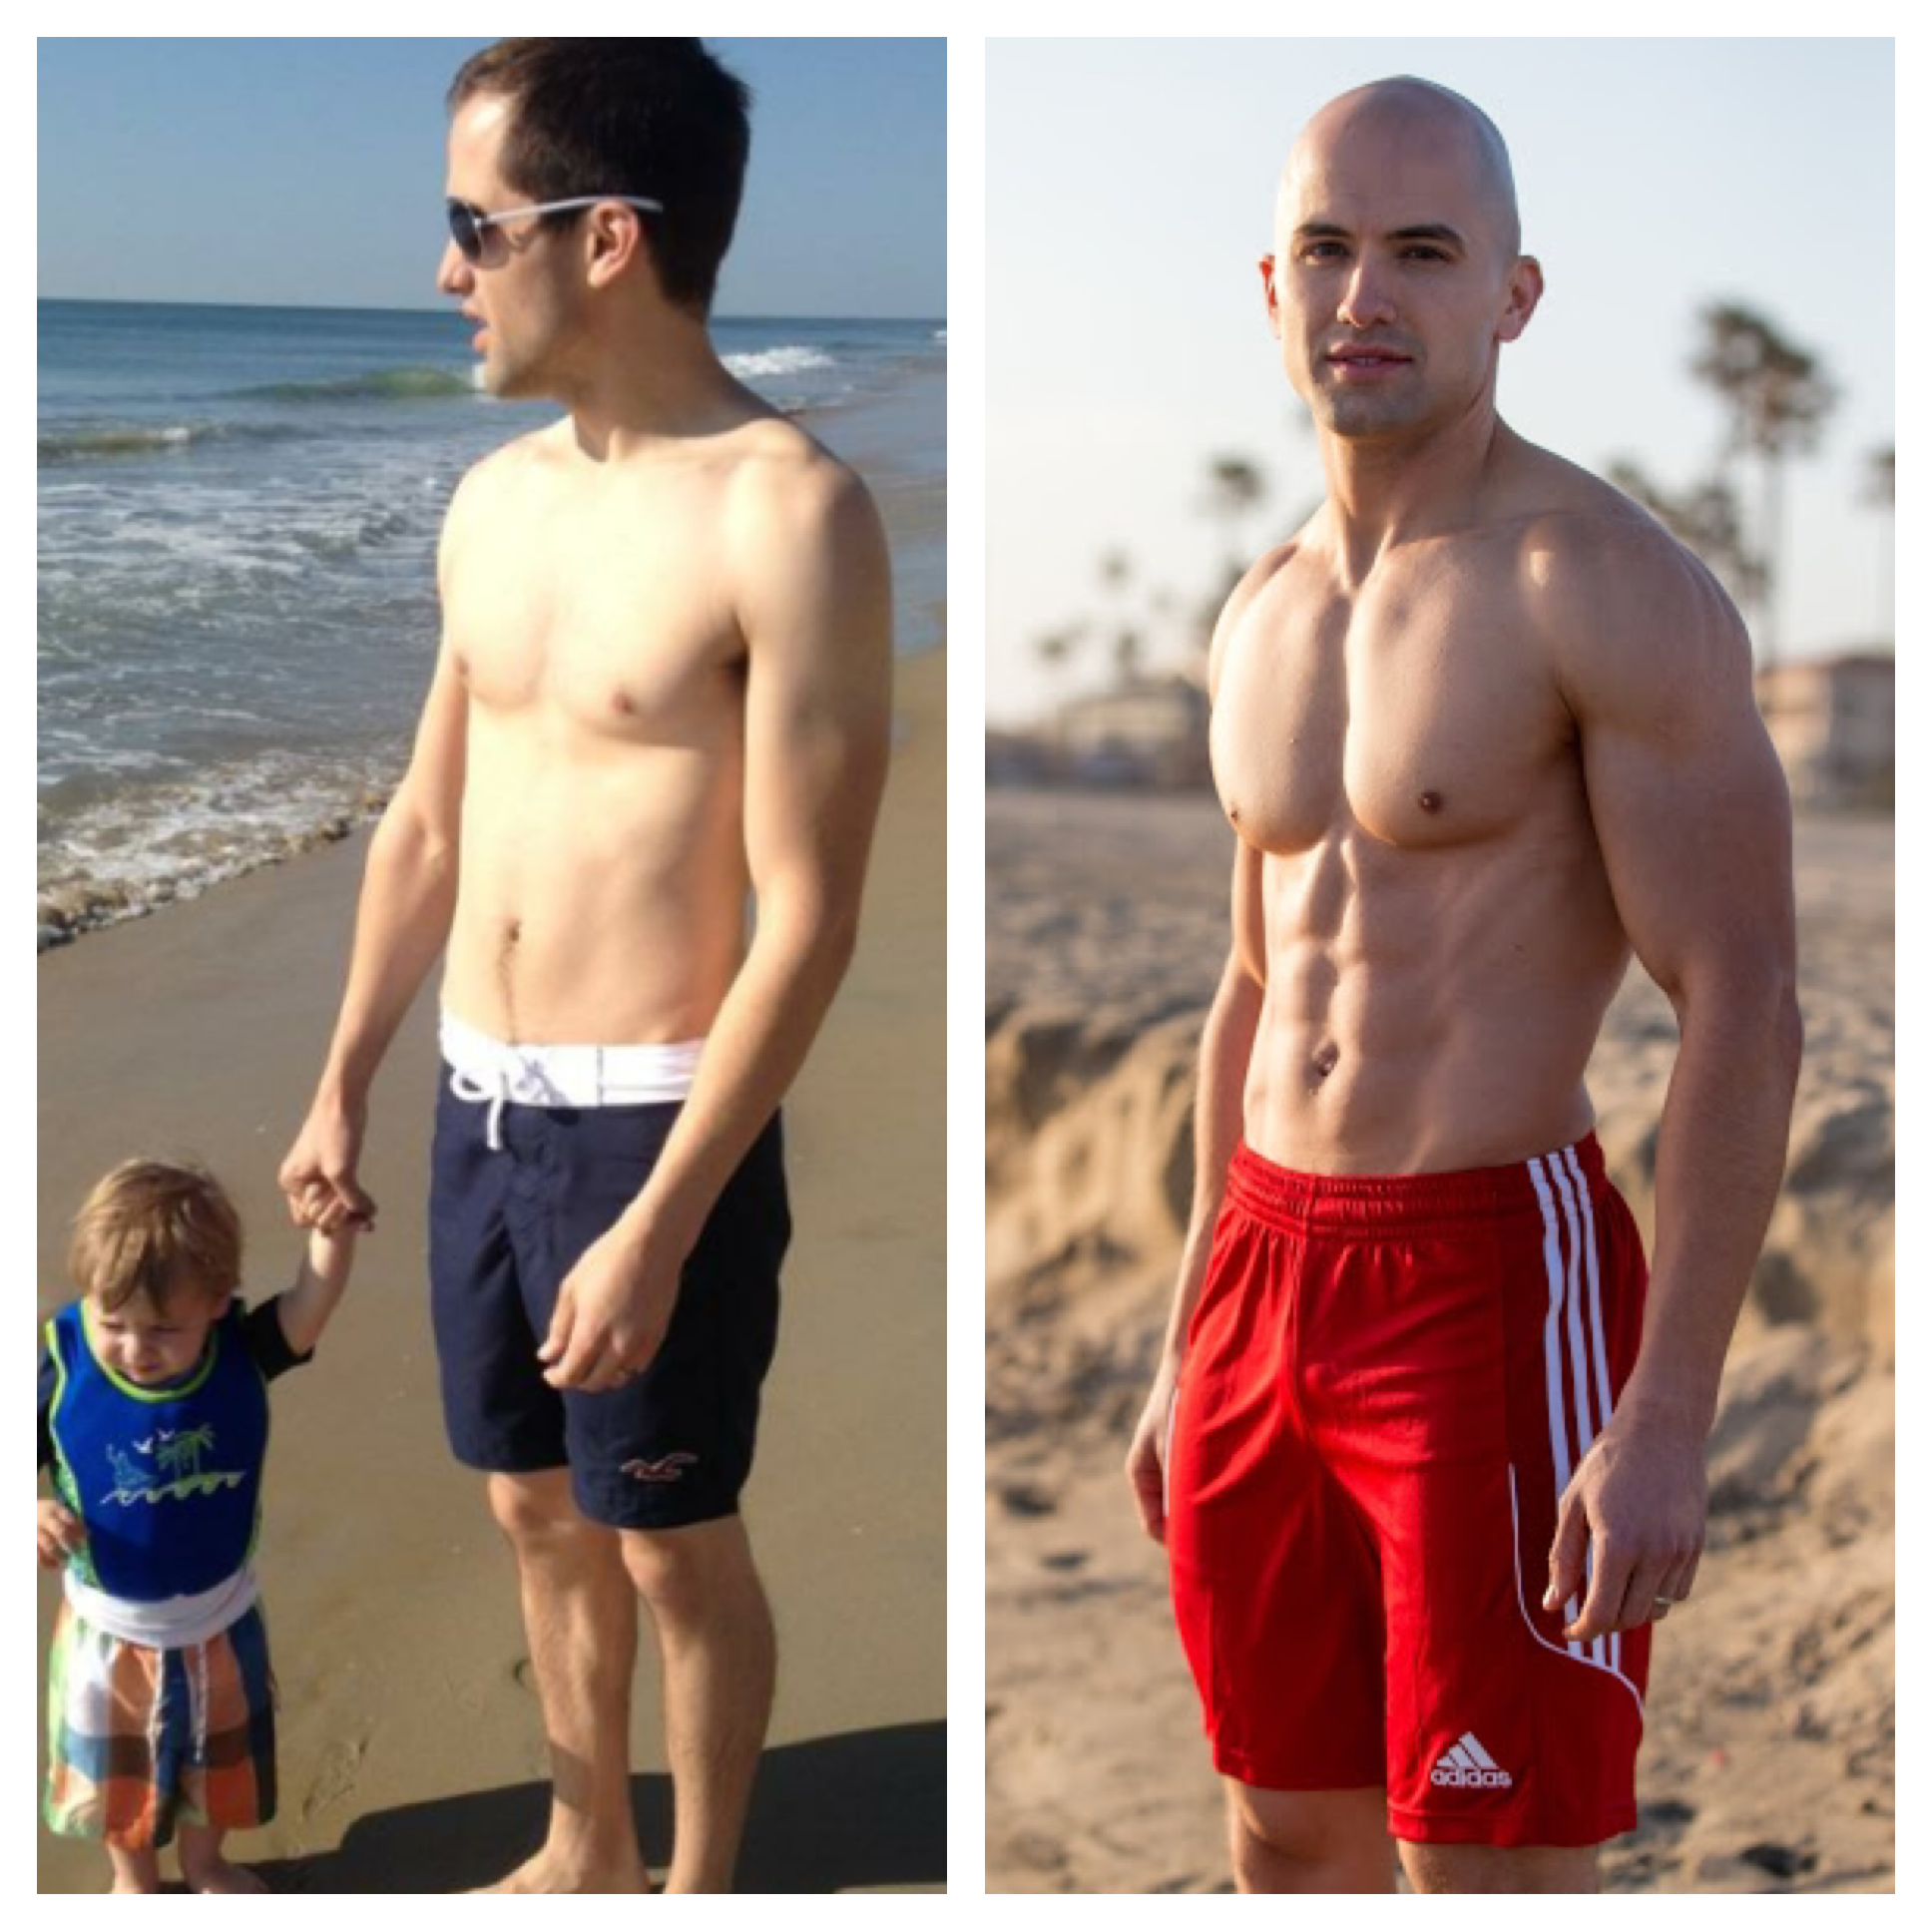 On the left: the picture that spurred my decision to become a Fit Dad. On the right: four years later and no stopping now!